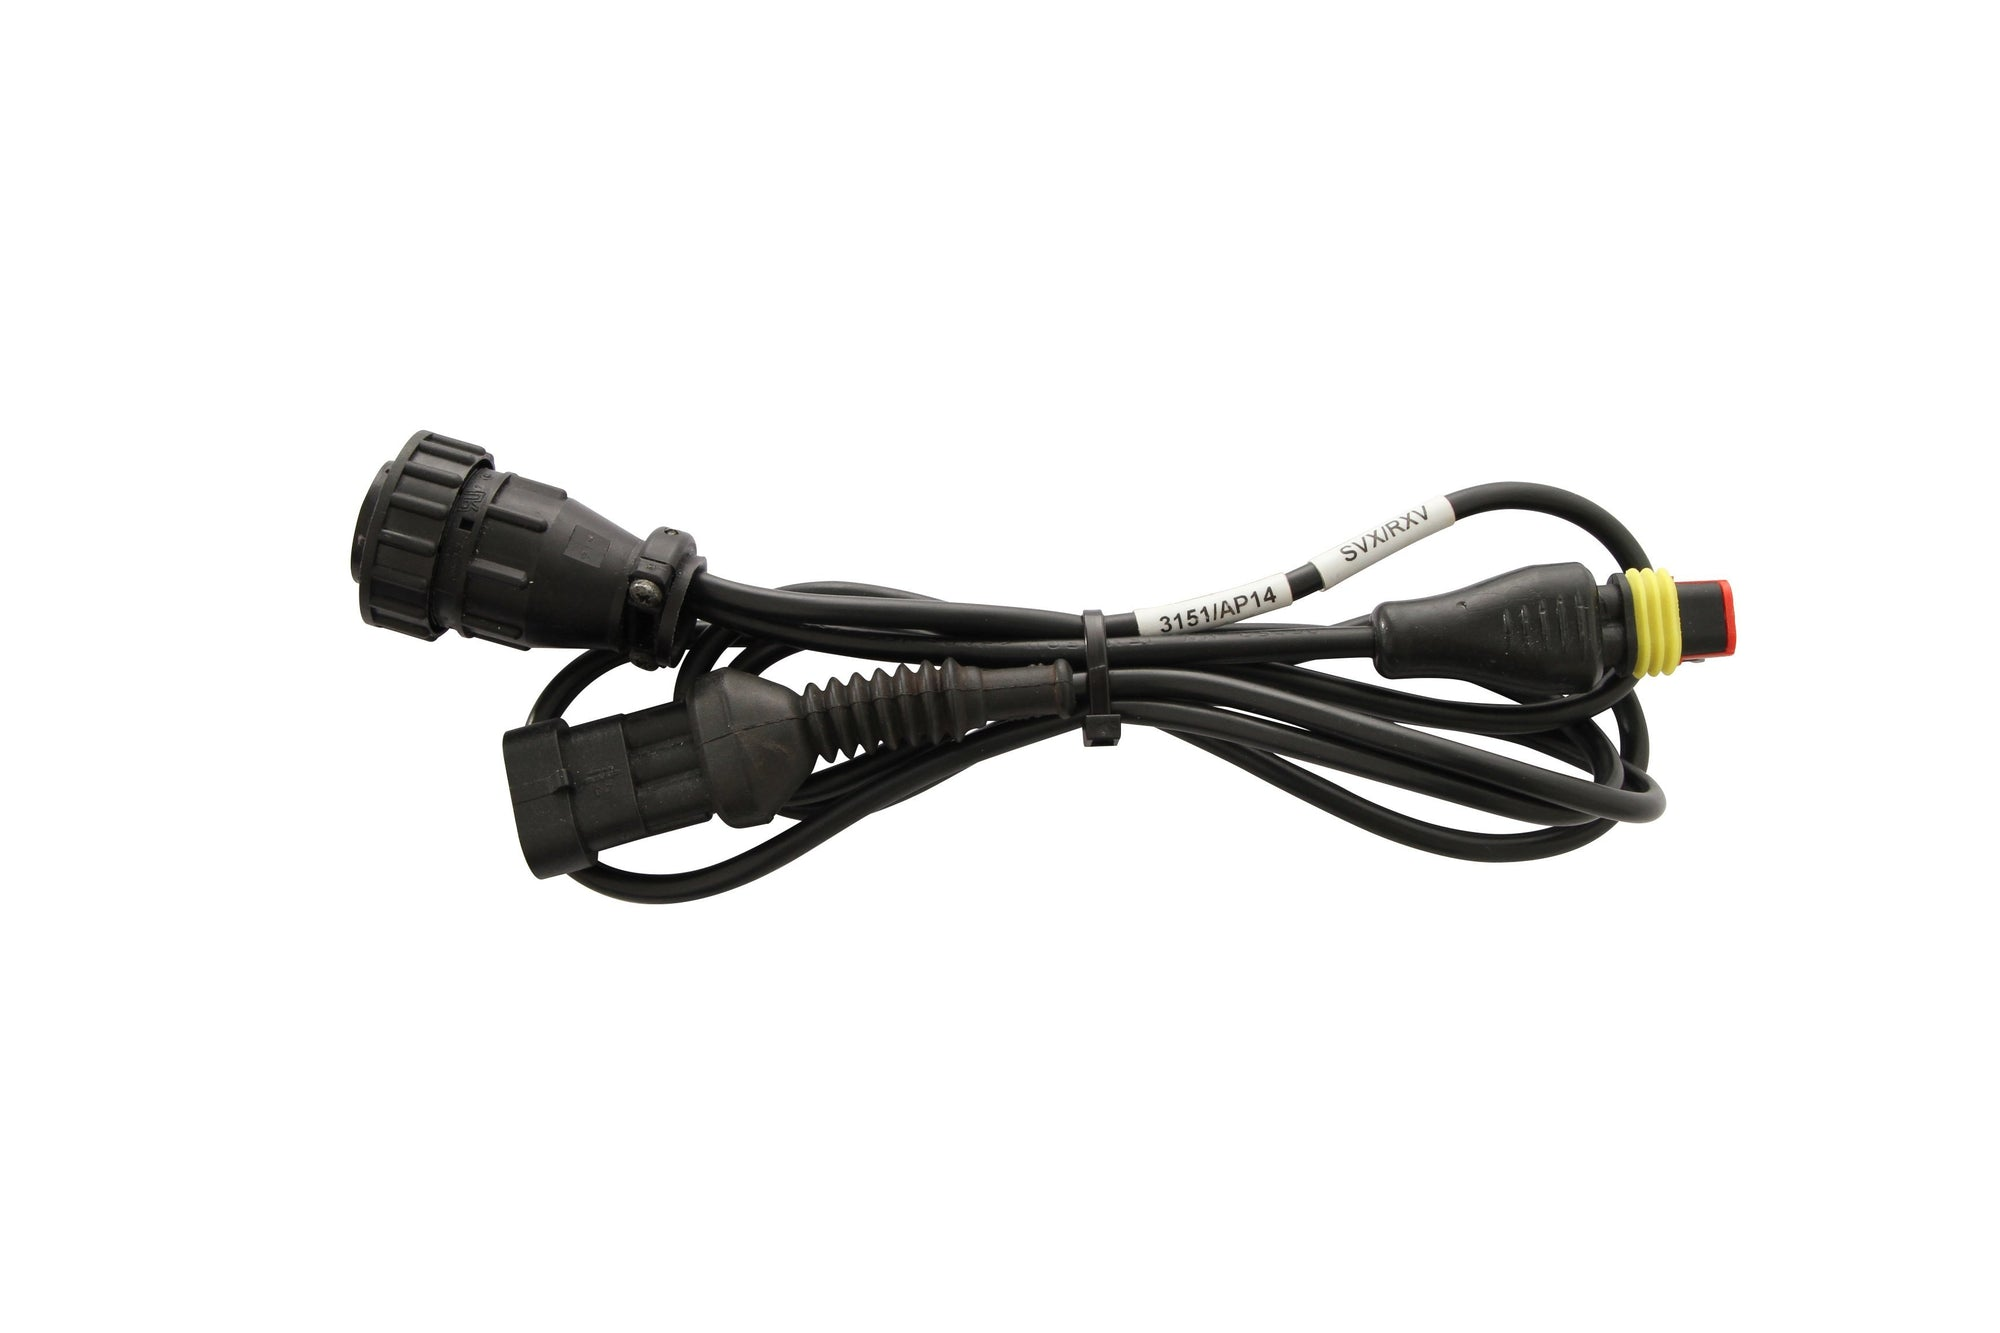 3151/AP14-APRILIA-cable-for-SVX-Supermoto-RXV-MXV-Enduro